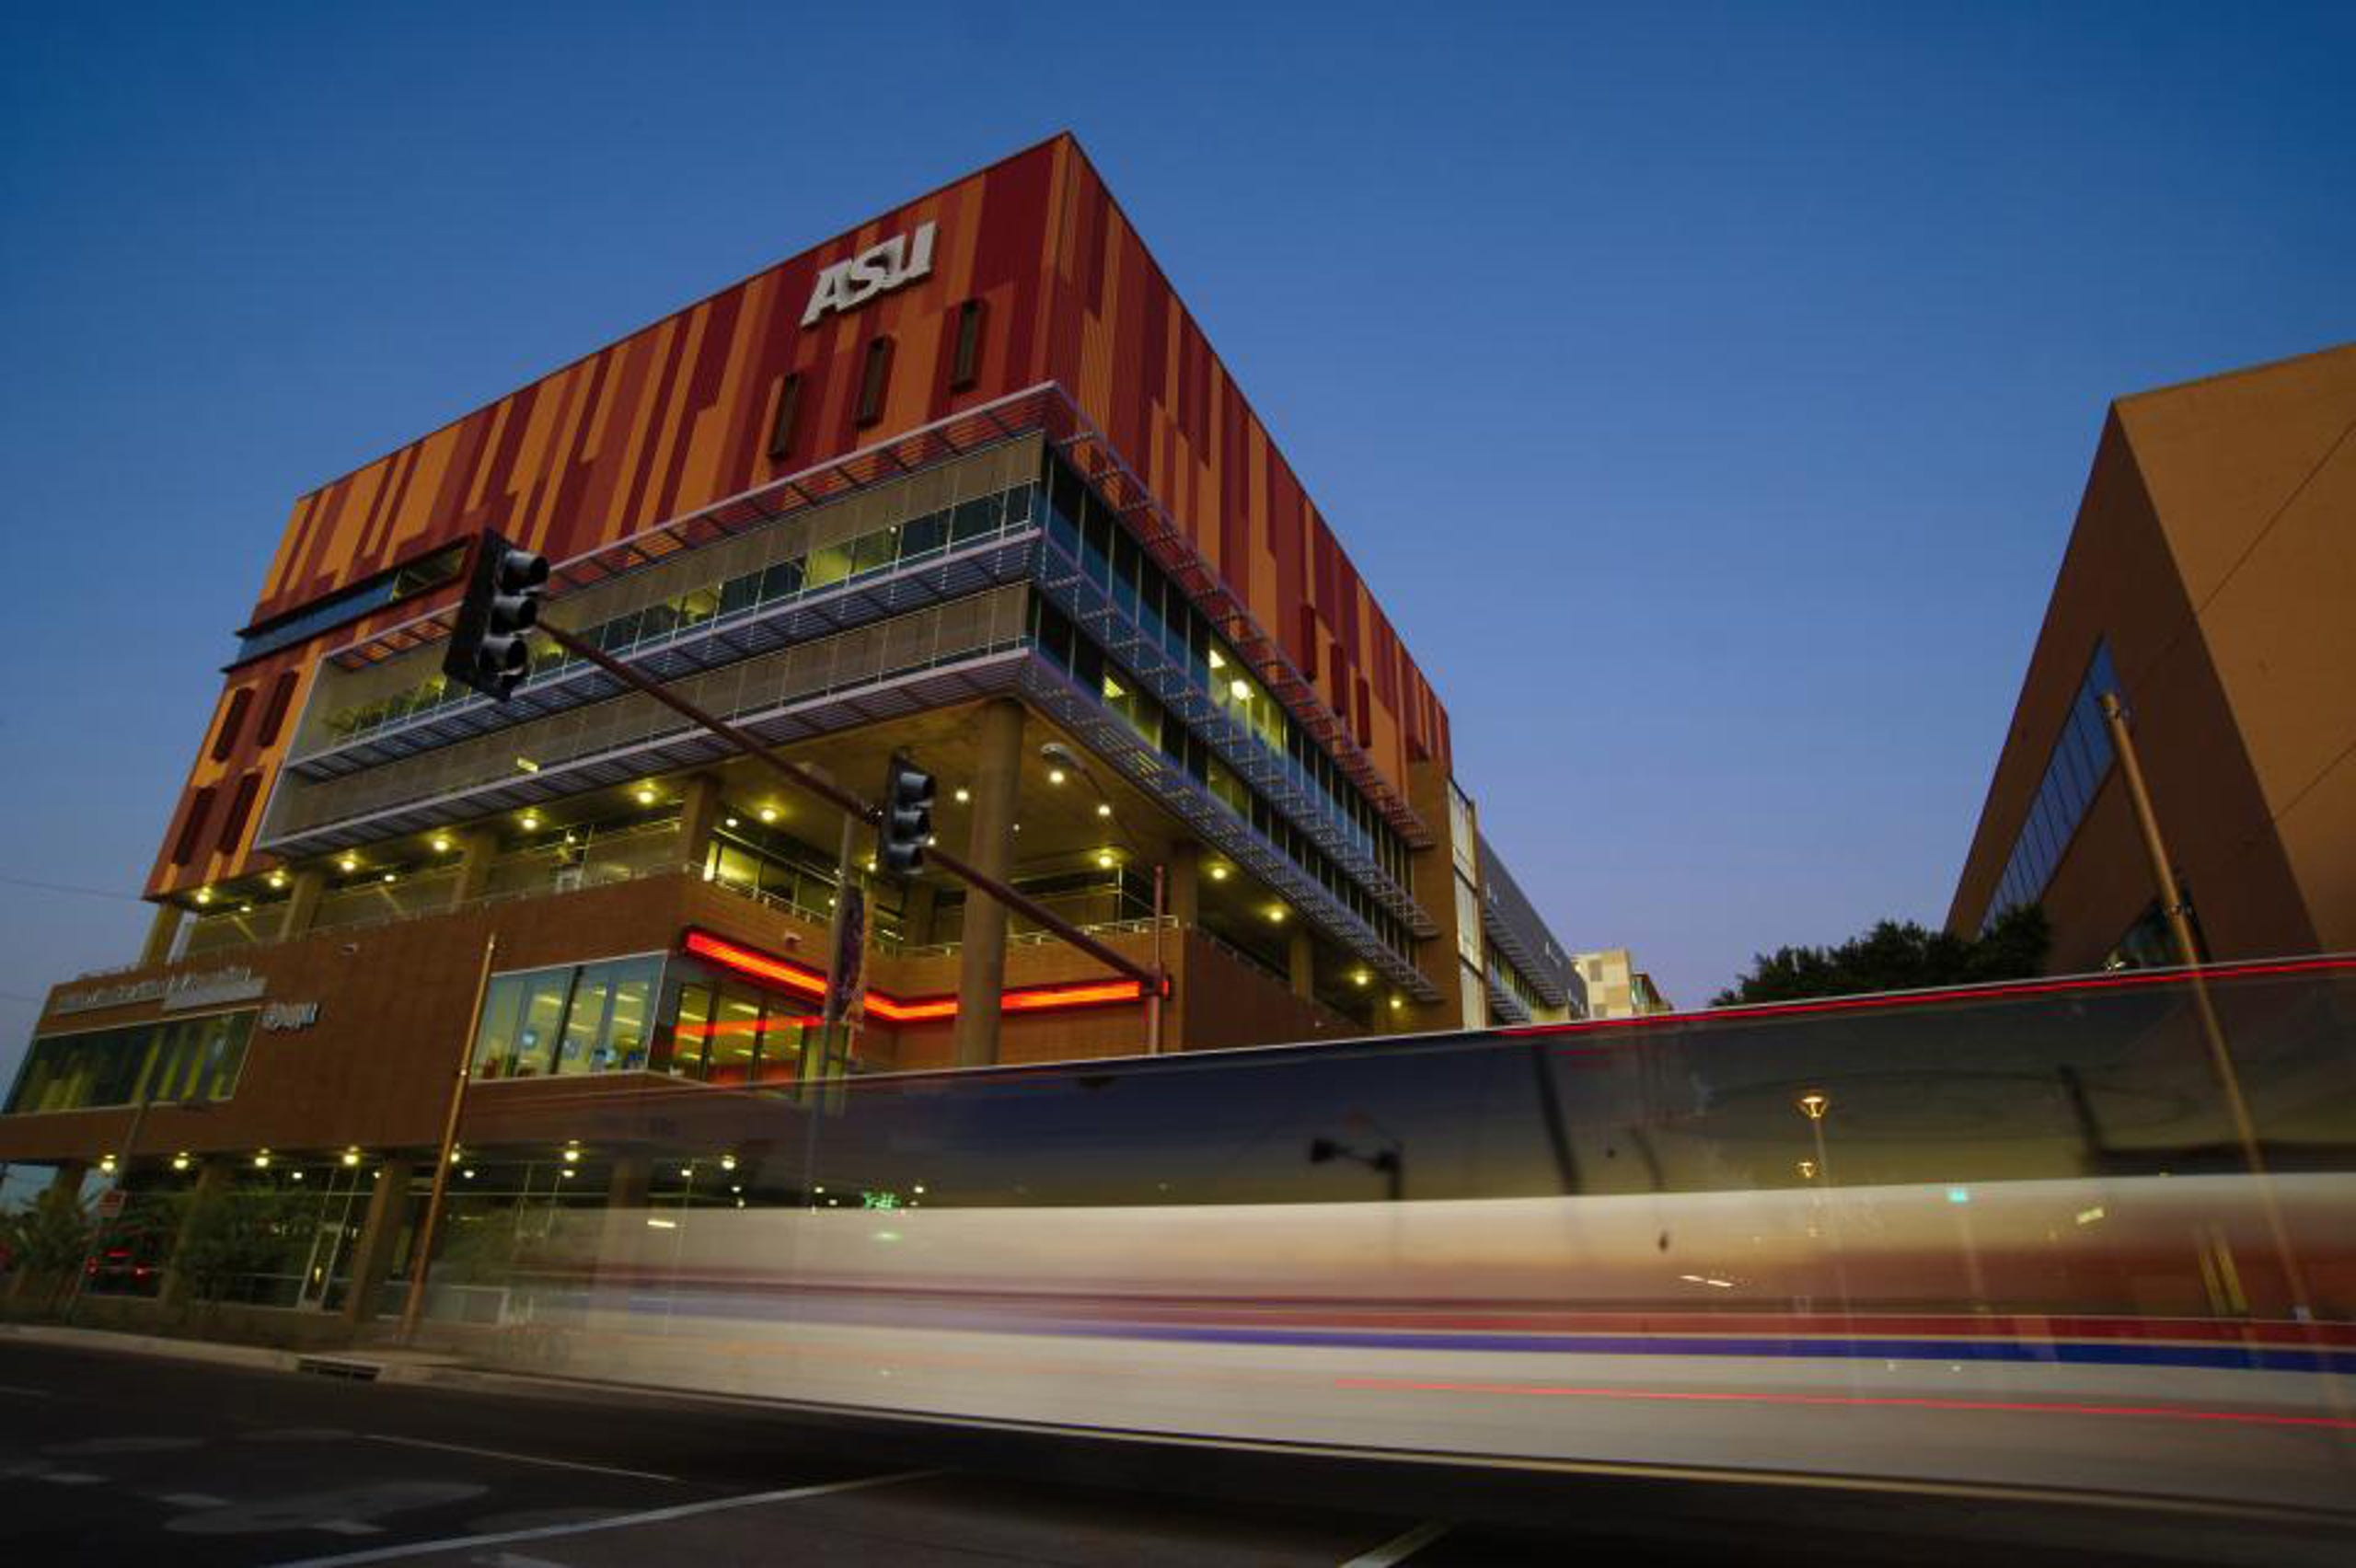 51 amazing university and college buildings across the USA